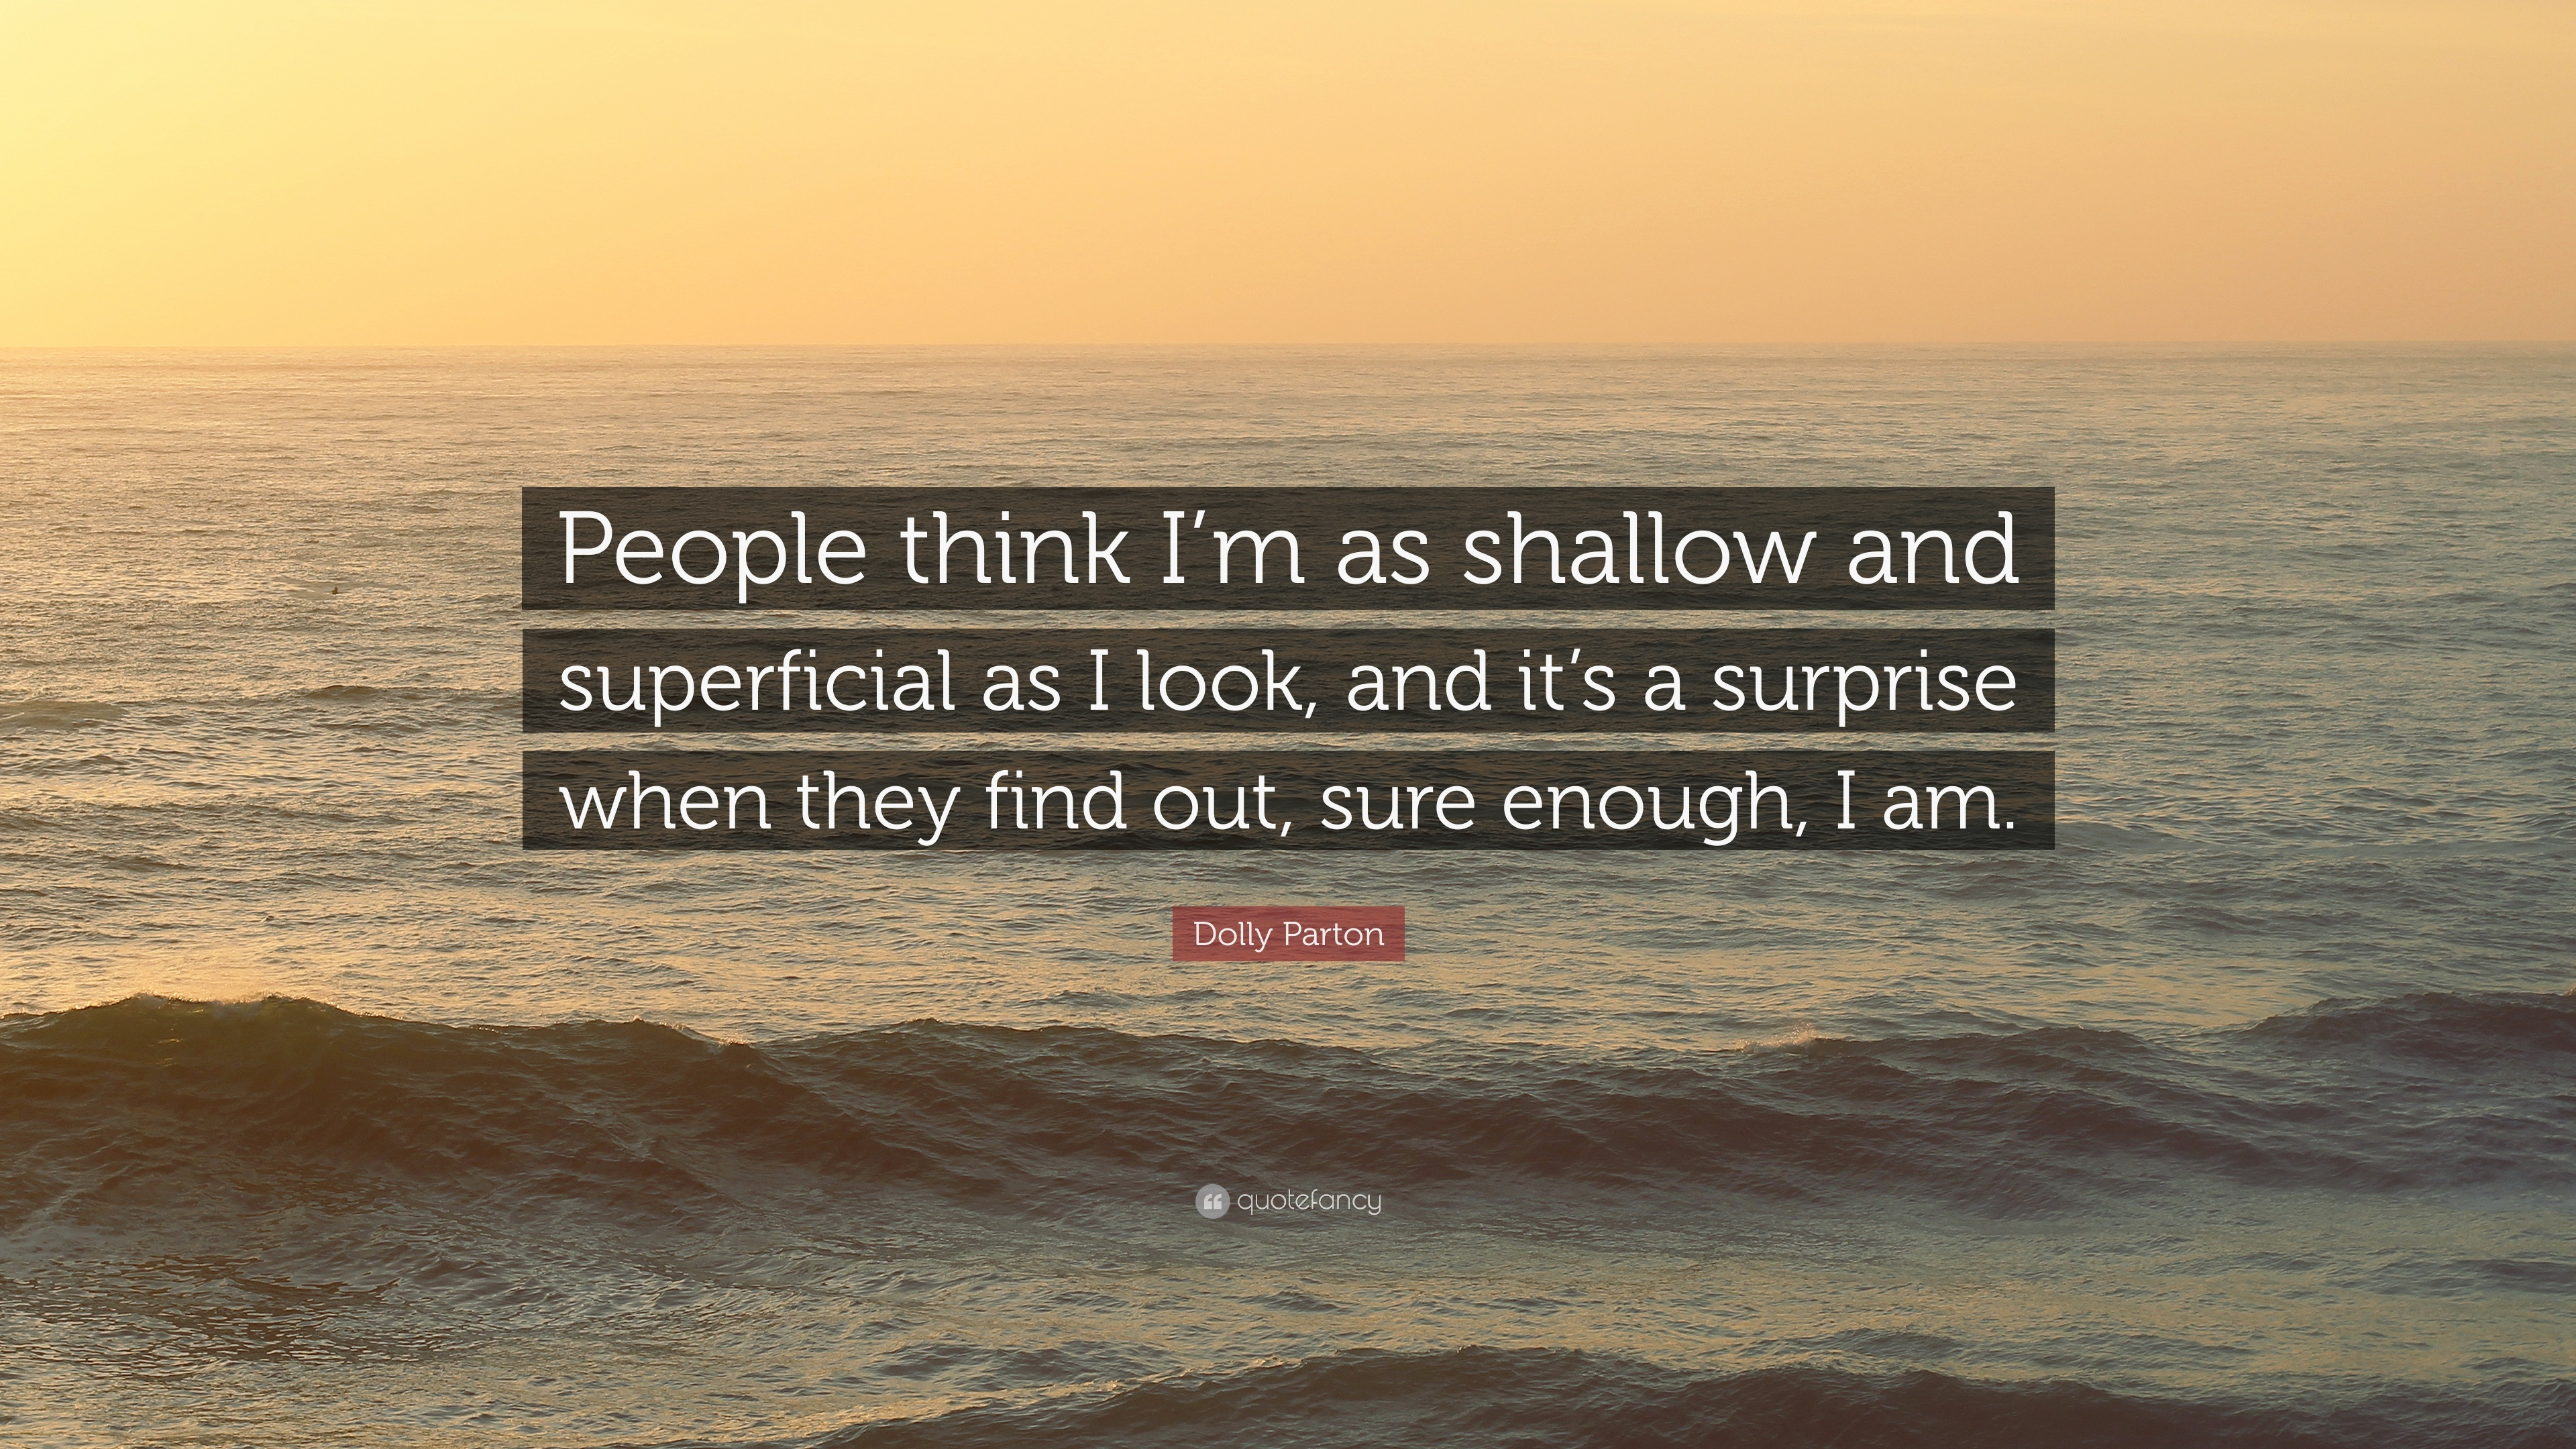 dolly parton quote people think i m as shallow and superficial as